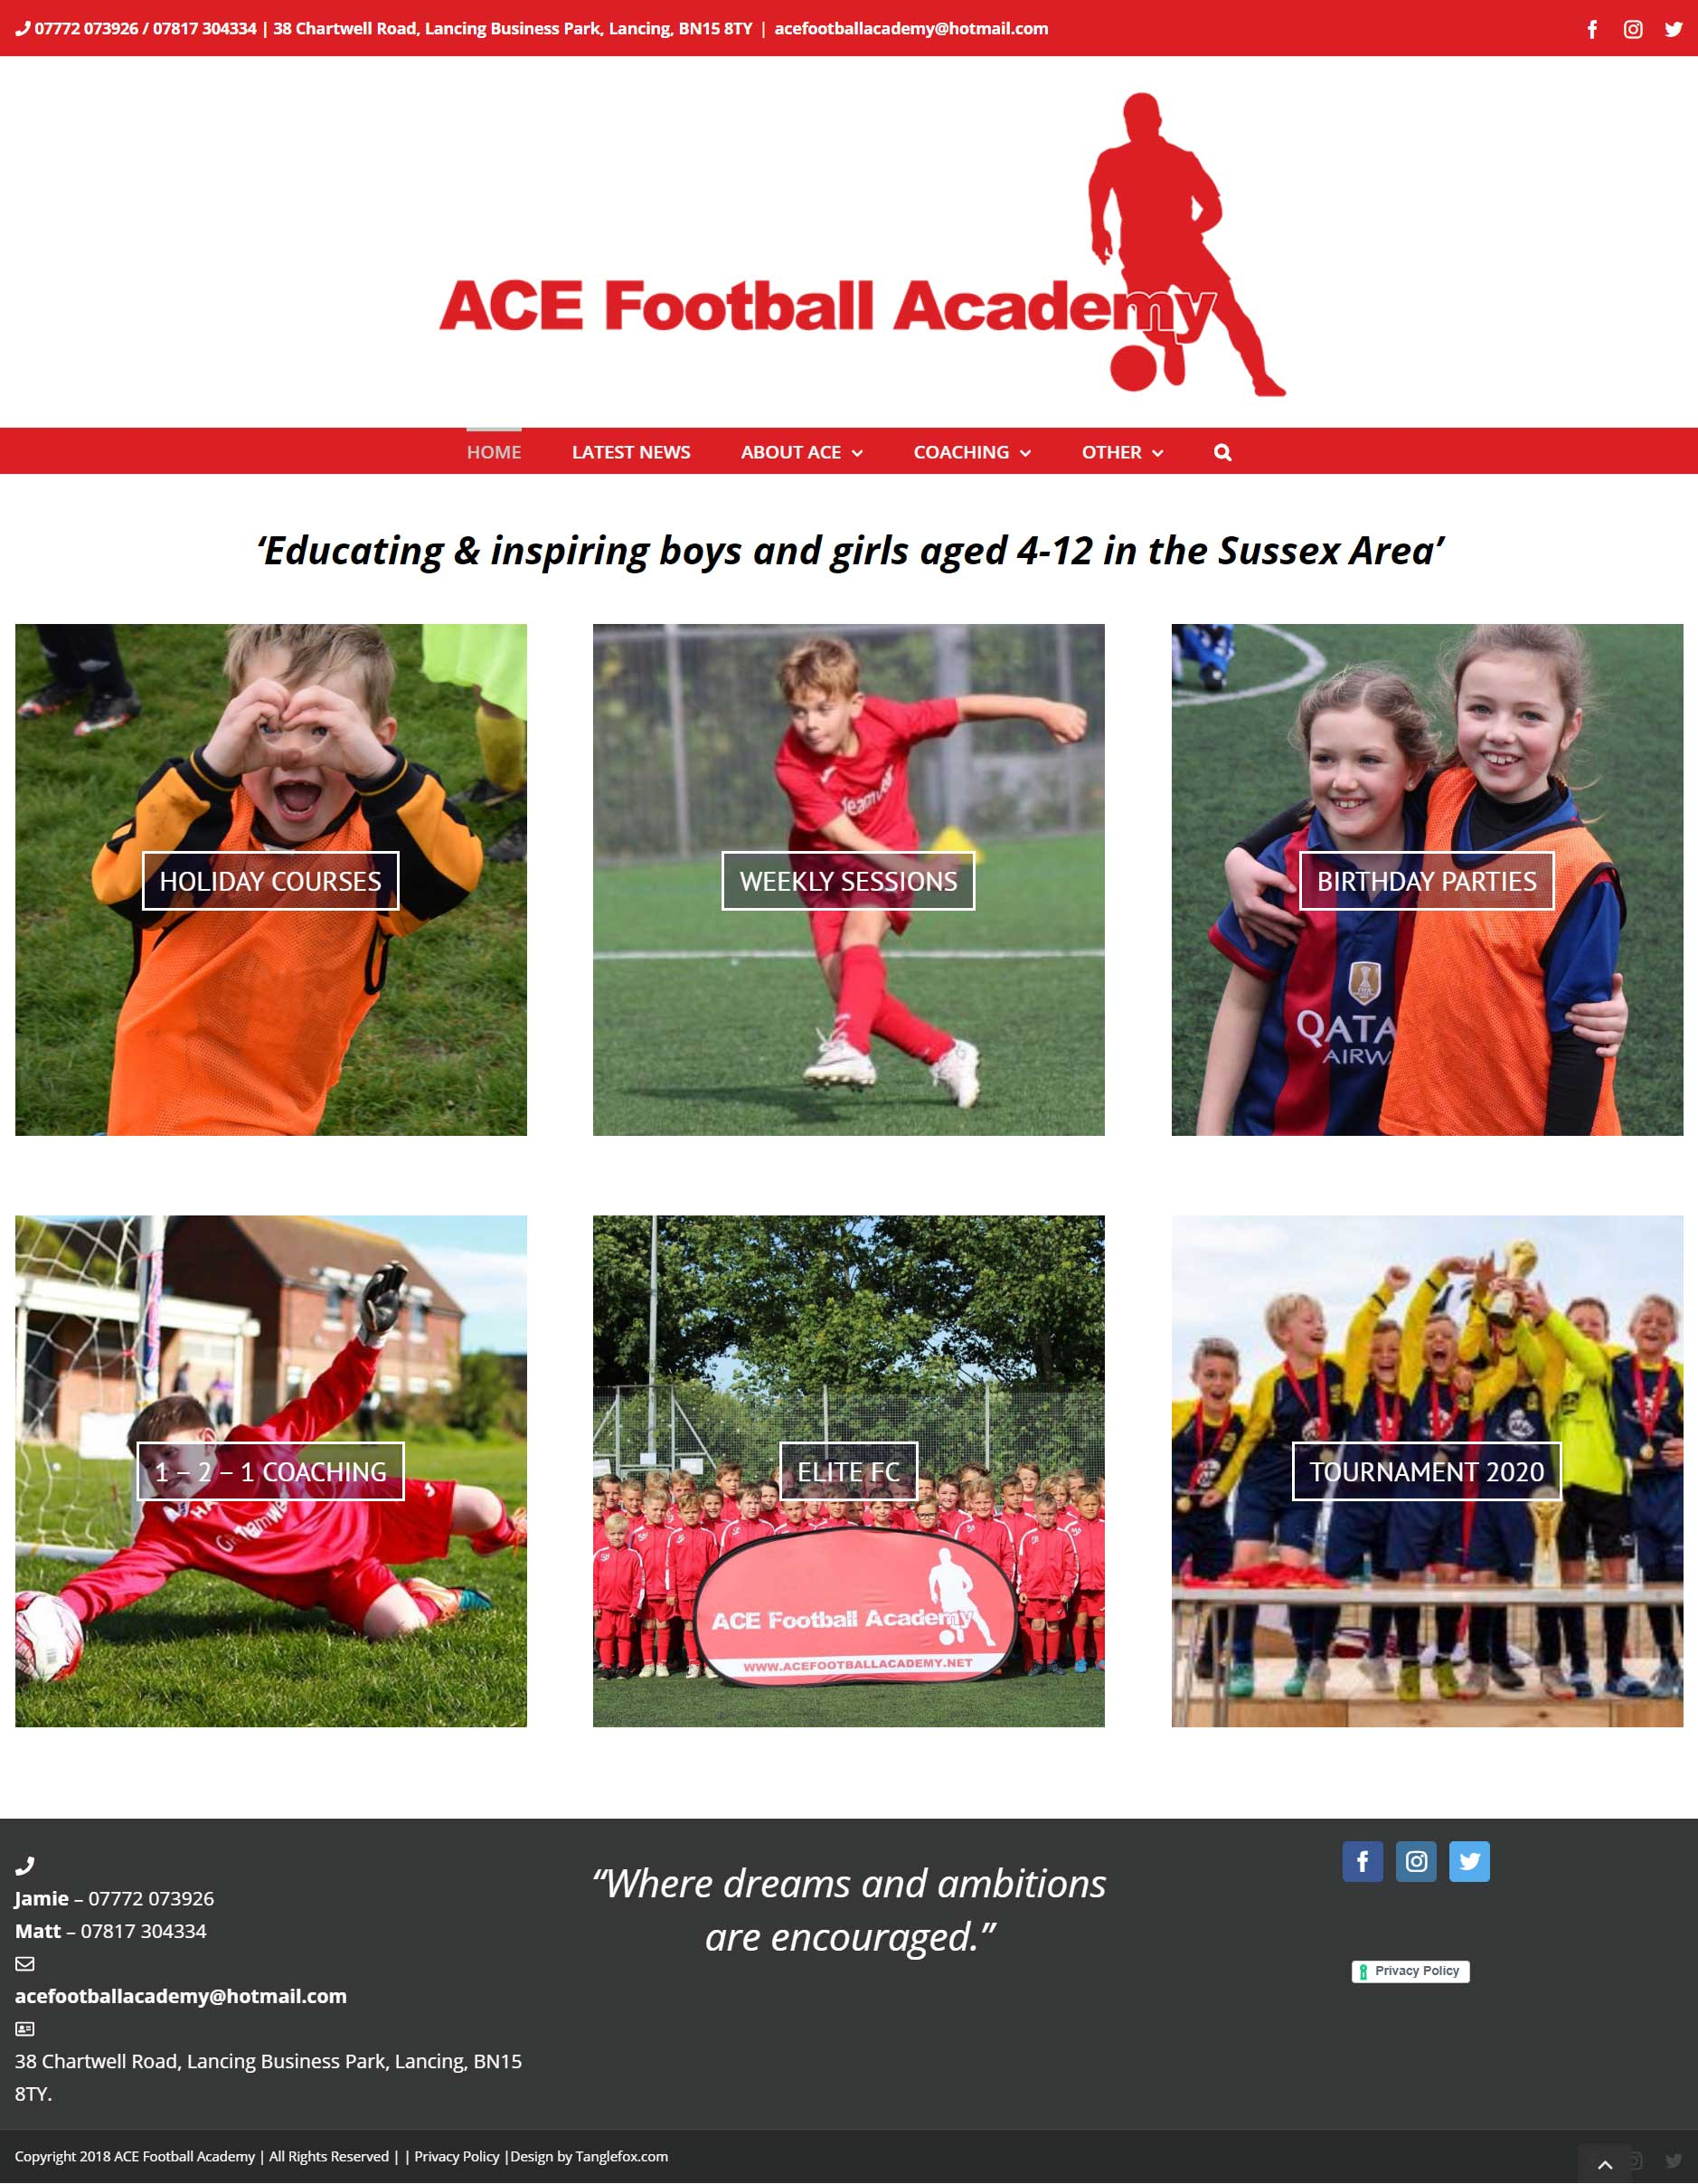 Ace Football Academy